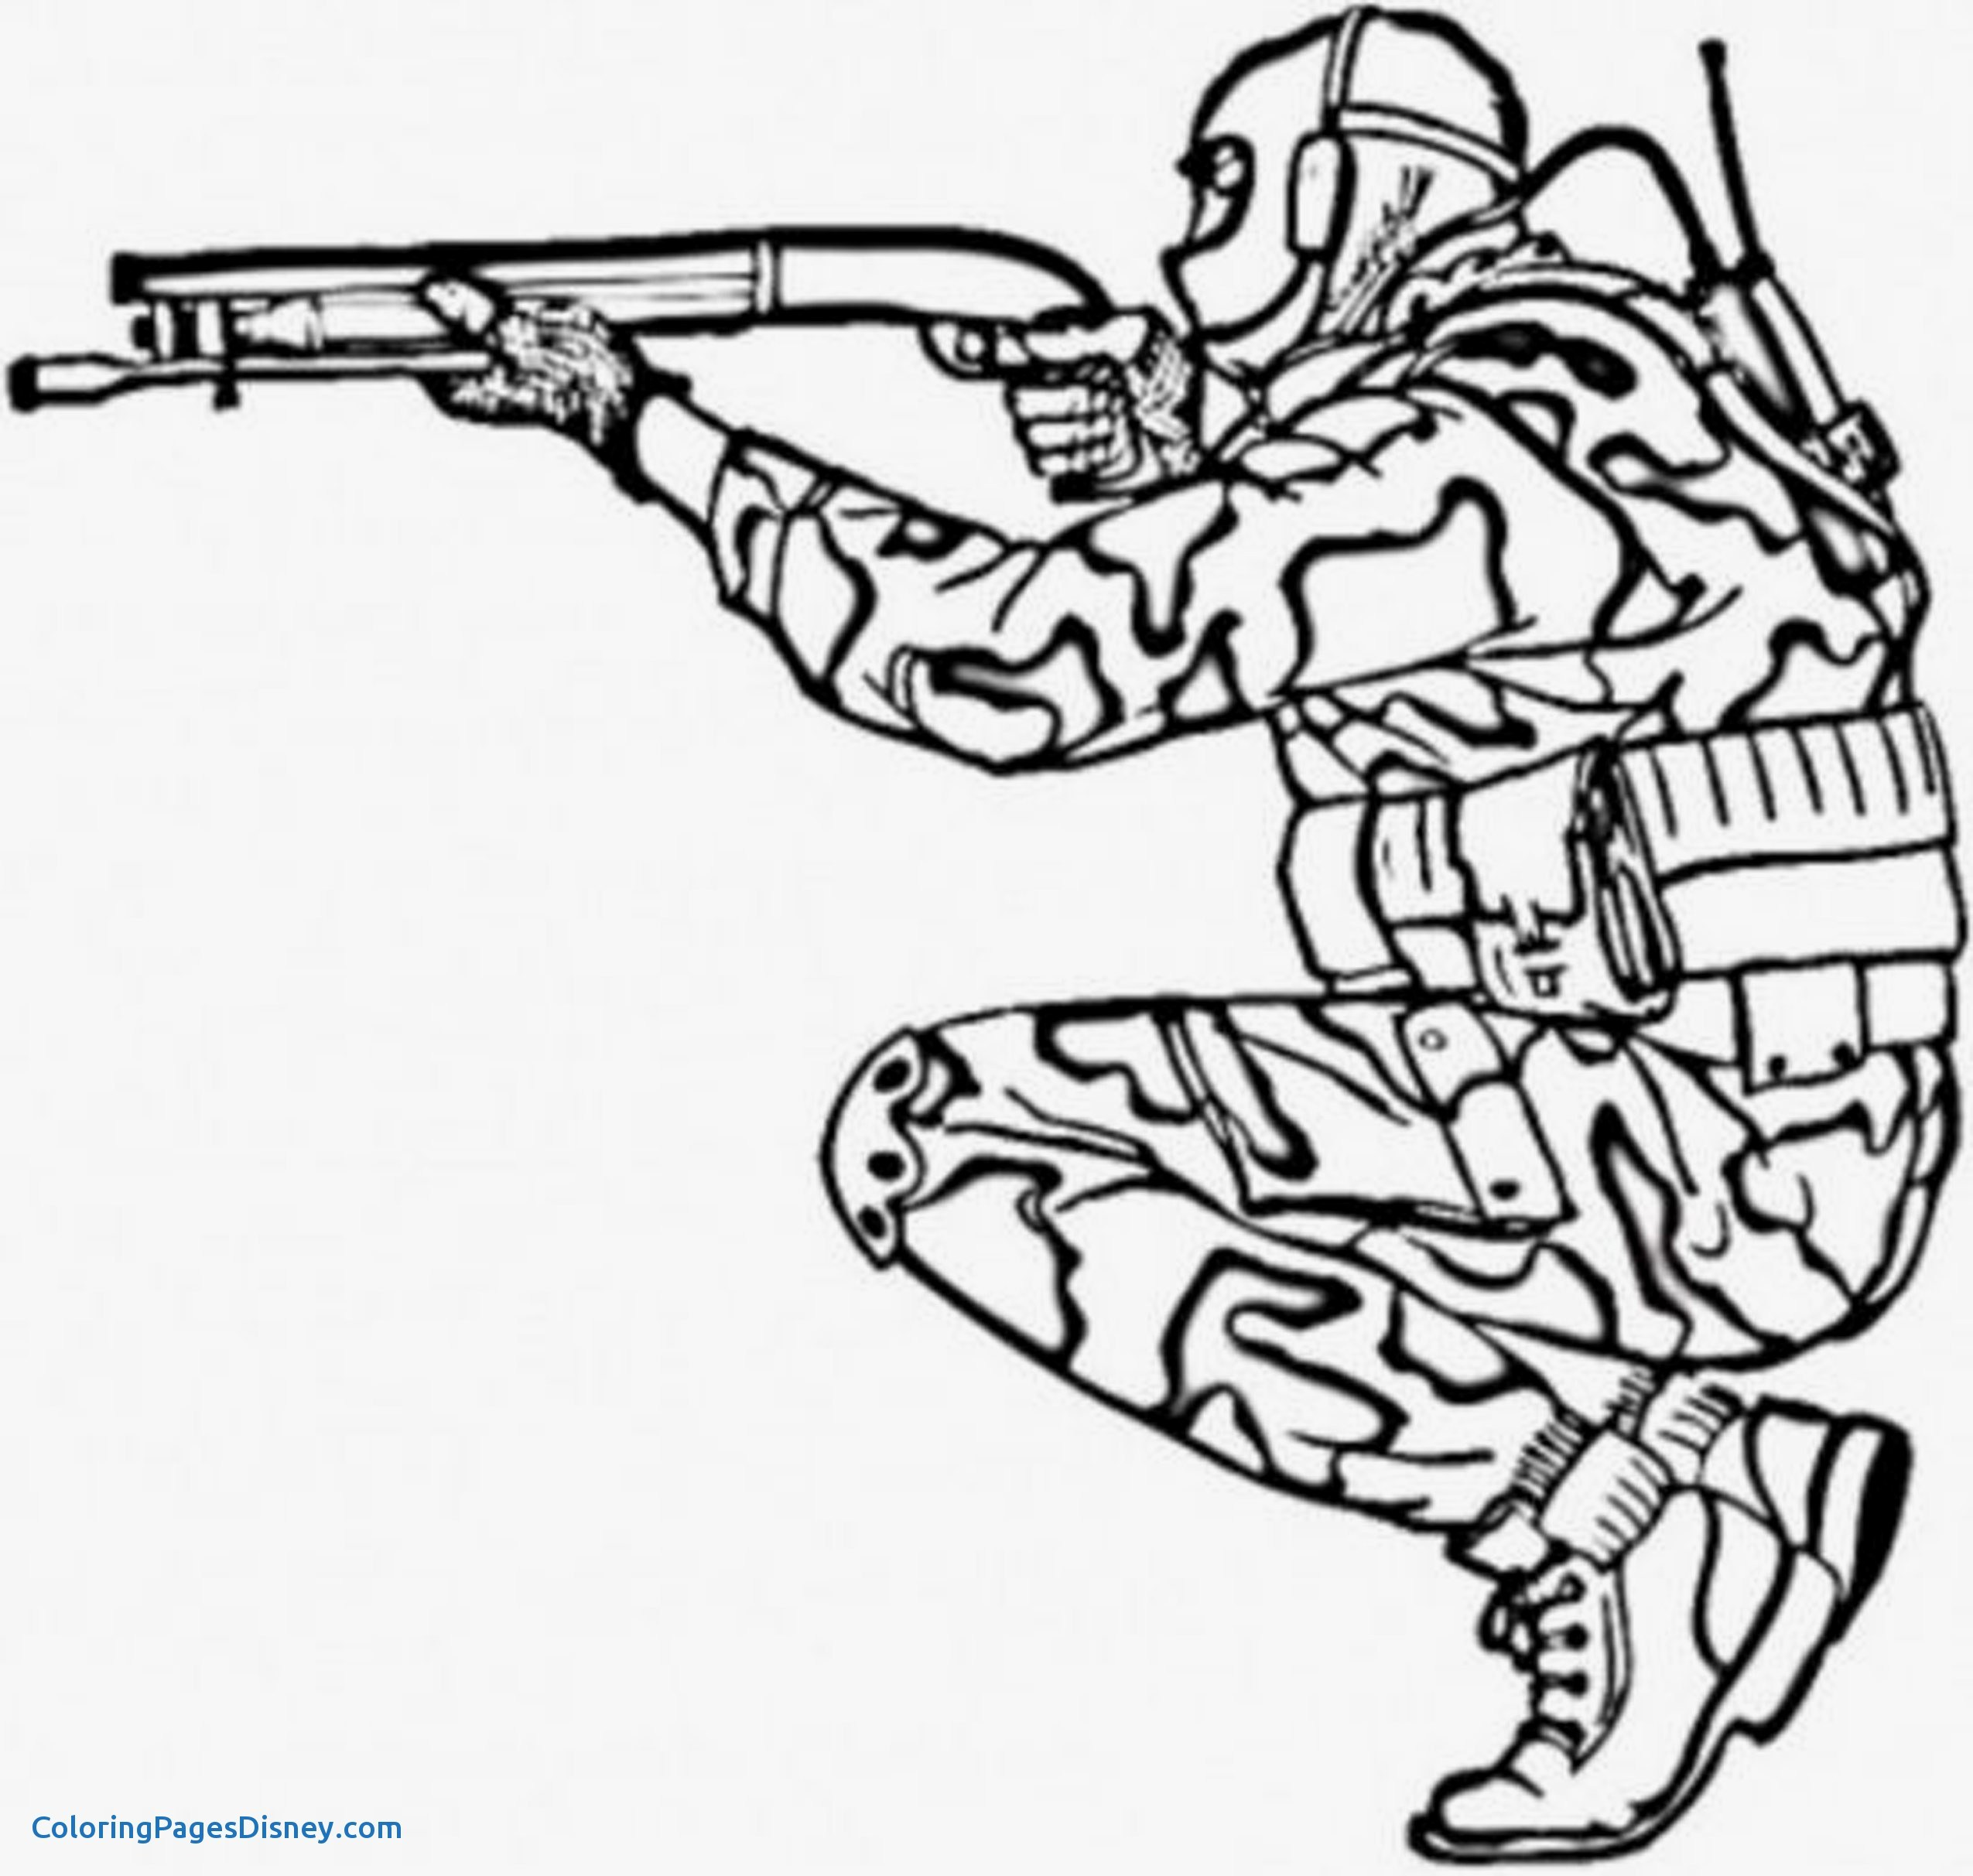 2550x2425 Shooting Sports Coloring Pages Beautiful Printable Coloring Pages